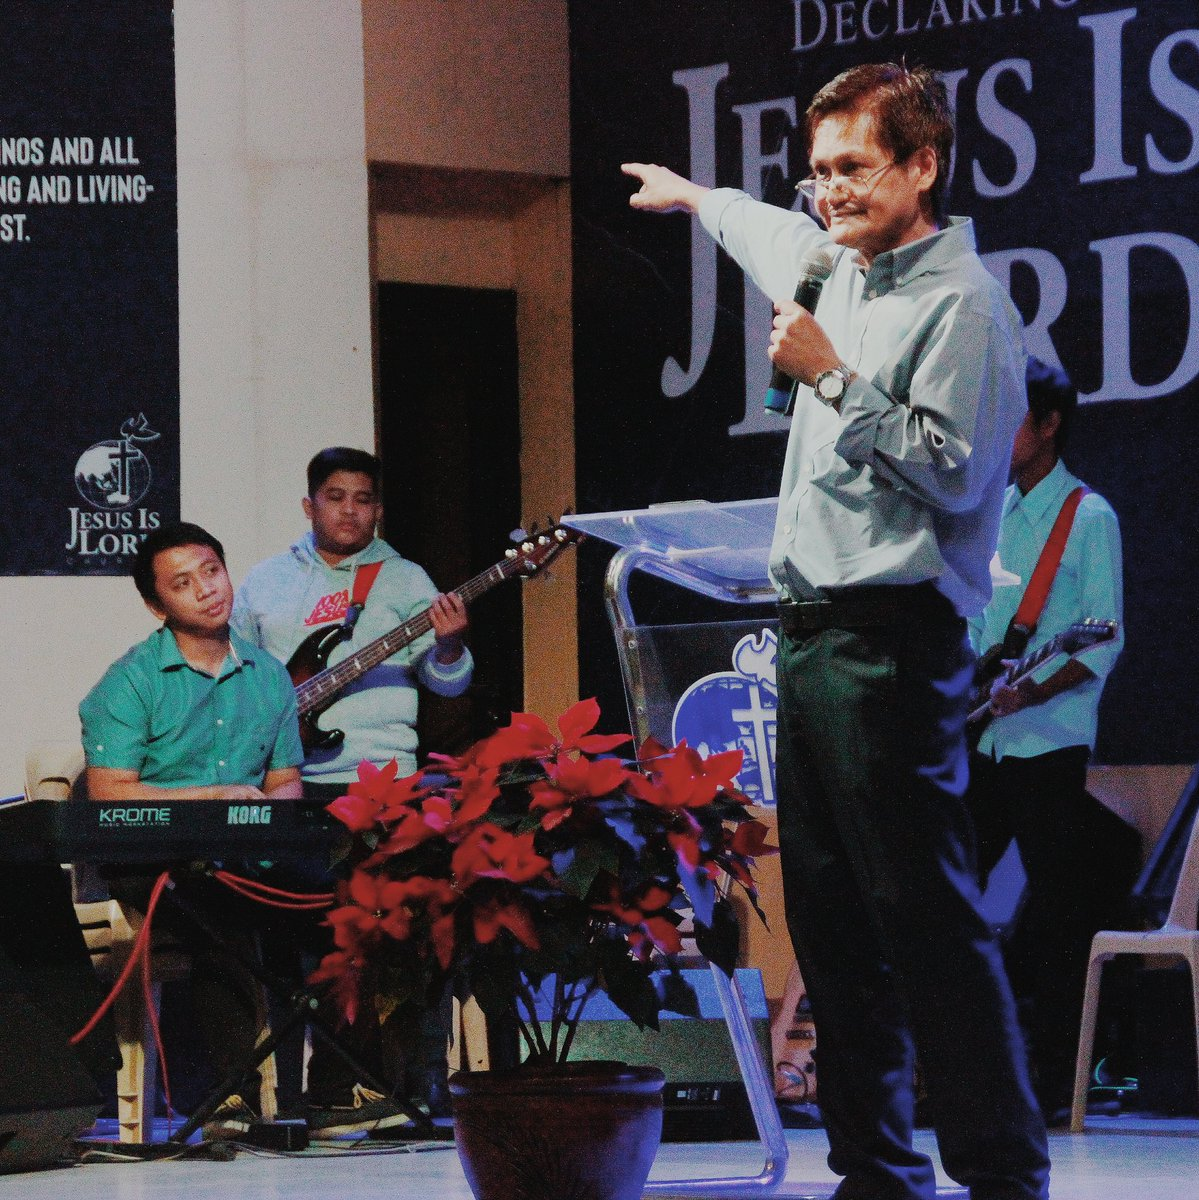 """Ptr. Noel Balbona on Win The World for Christ: """"Winning the world for Christ is possible if only we will fully understand why Jesus was born, suffered death on the cross, and put importance on one's soul."""" #SoulWinning #2ndService<br>http://pic.twitter.com/qbEf1EYk97"""